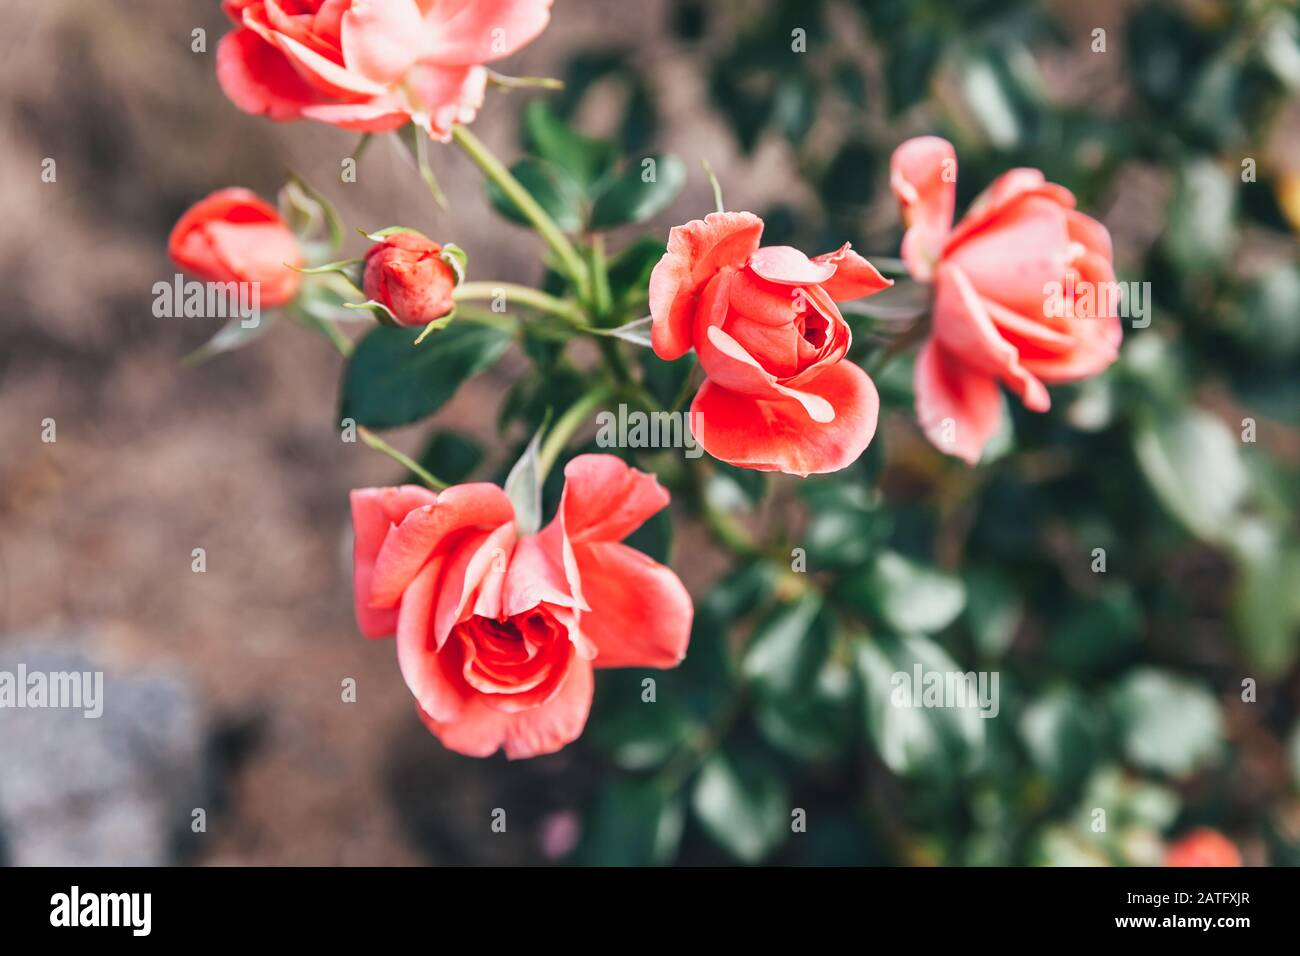 Beautiful Pink Rose Flowers In Summer Time Nature Background With Flowering Red Roses Inspirational Natural Floral Spring Blooming Garden Or Park Backdrop Beauty Flower Vintage Retro Art Design Stock Photo Alamy